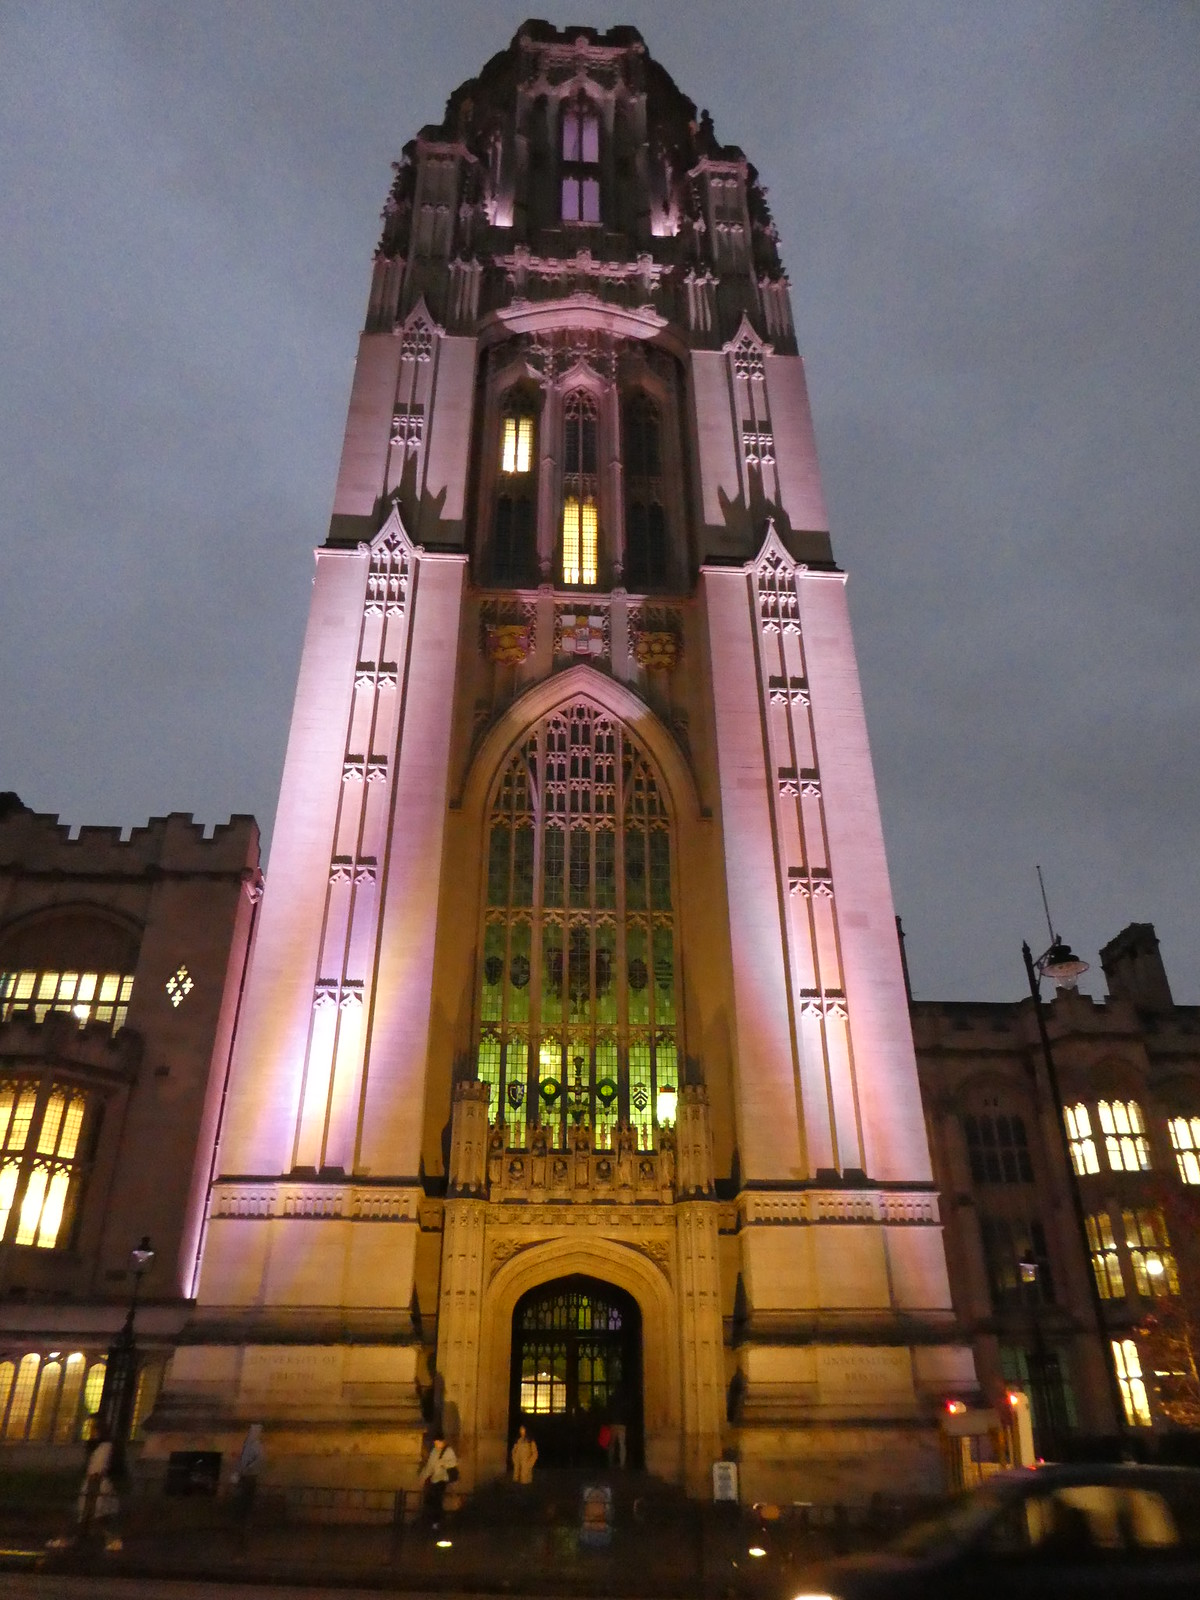 Will's Memorial Building, University of Bristol